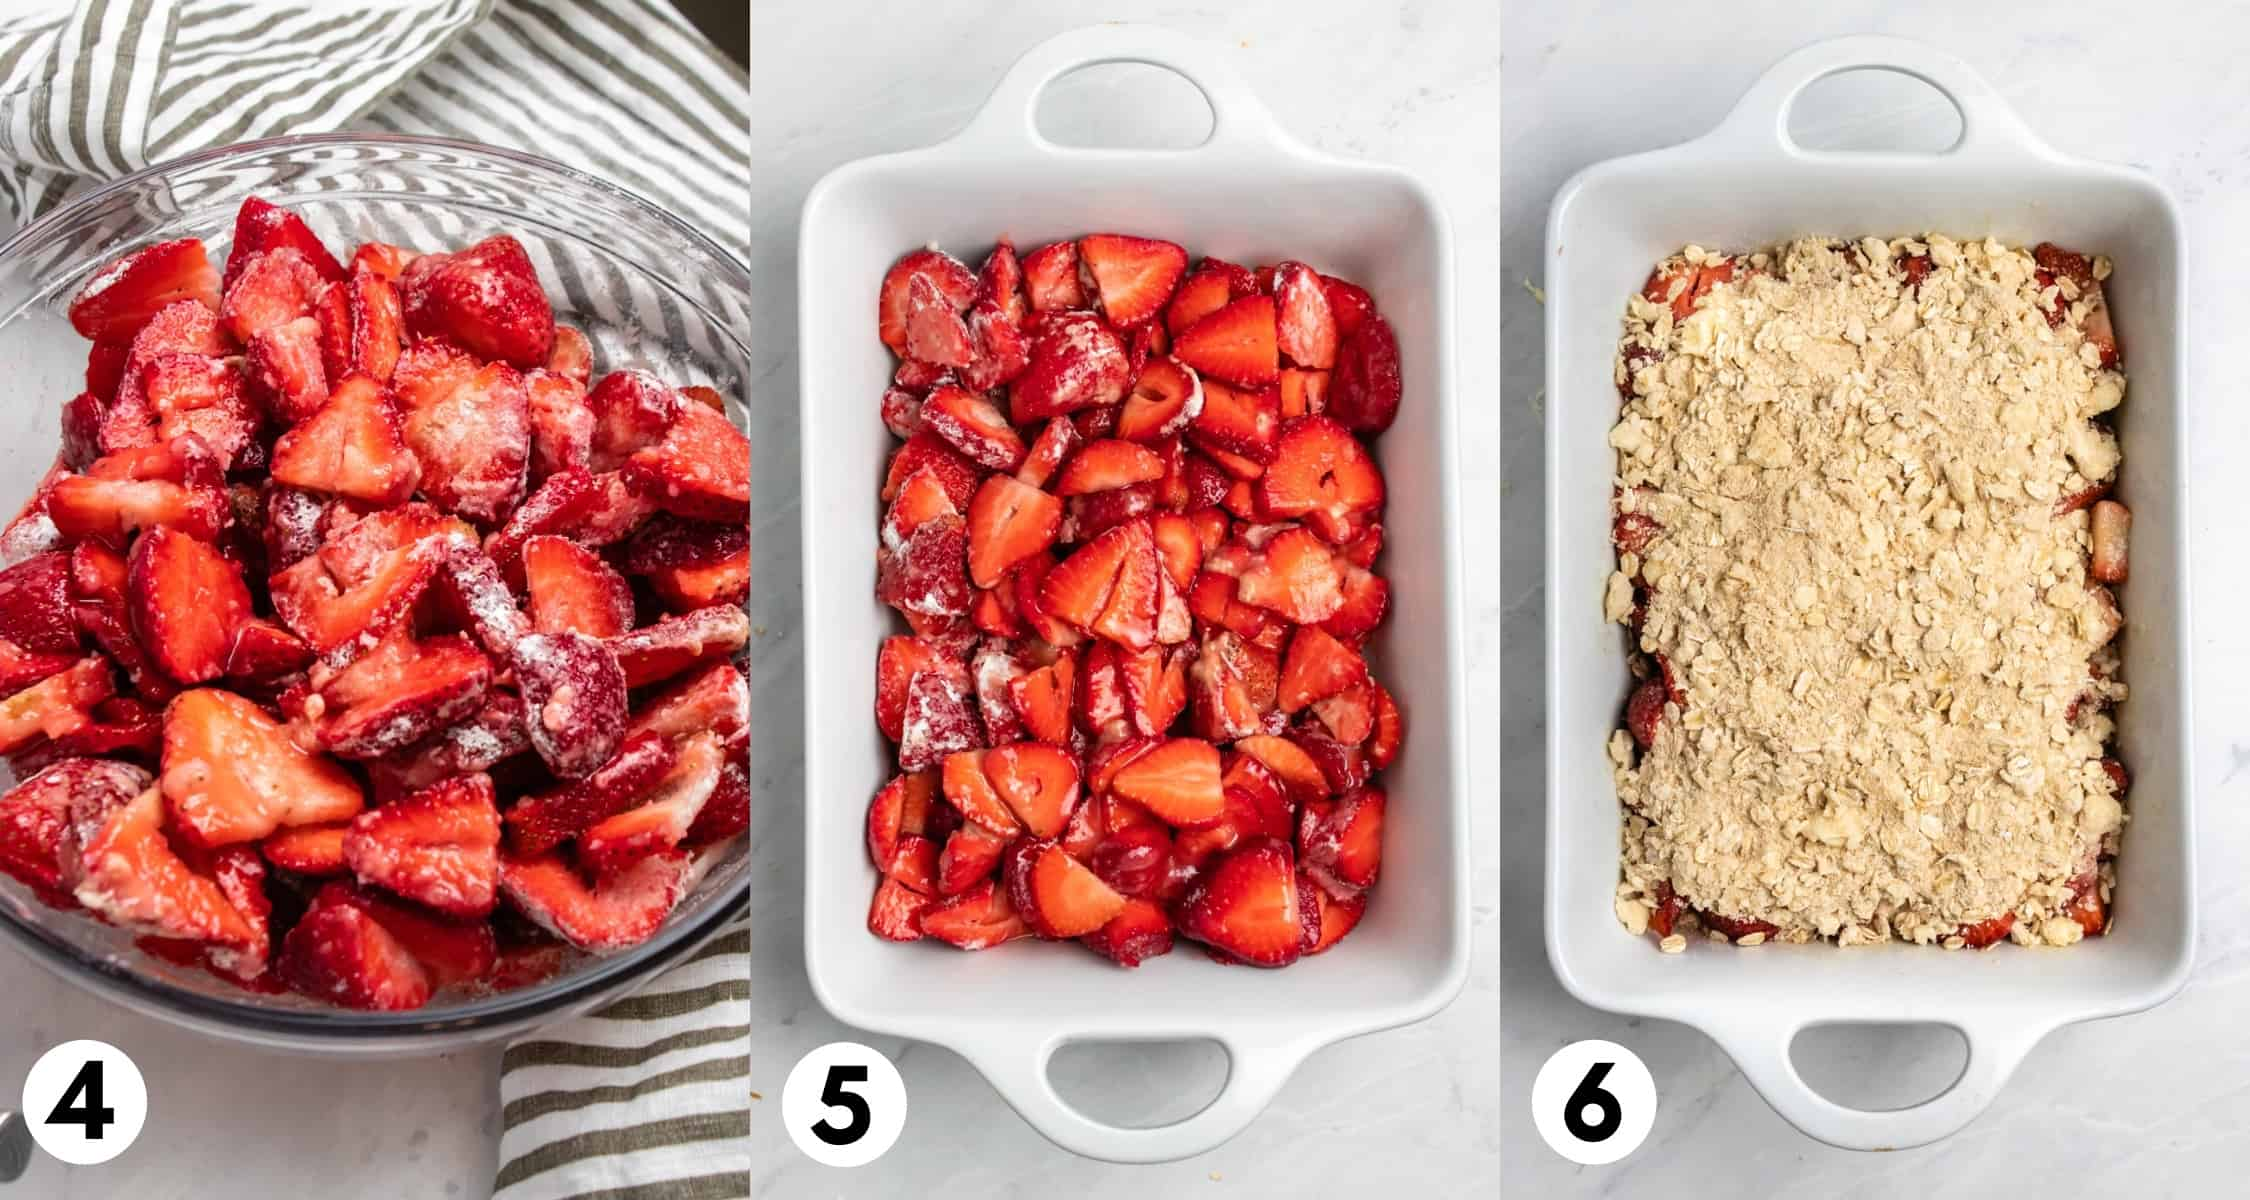 Strawberries with sugar and corn starch in bowl and then in casserole dish and then with crumble topping on top.